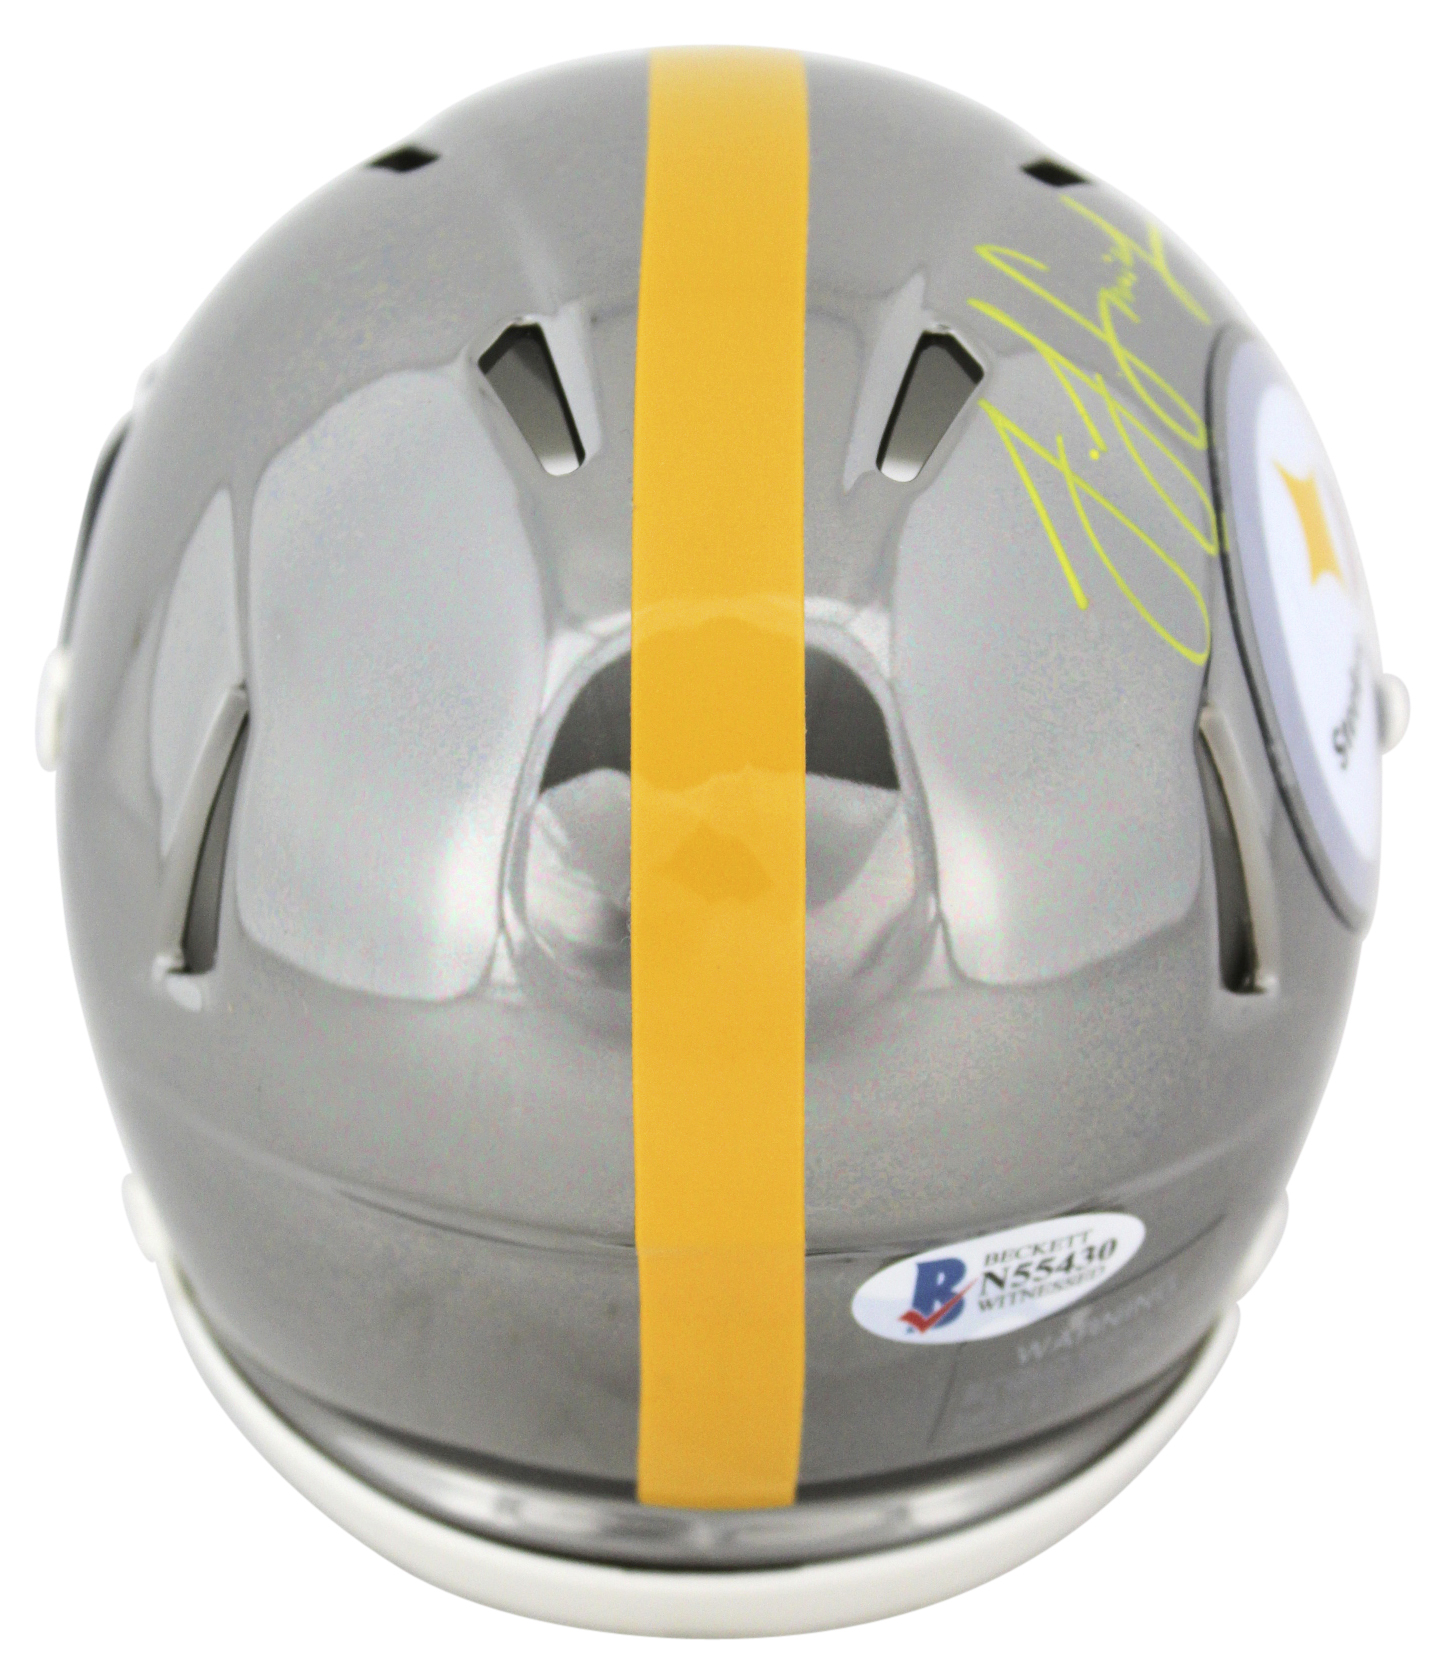 Steelers JuJu Smith-Schuster Authentic Signed Chrome Mini